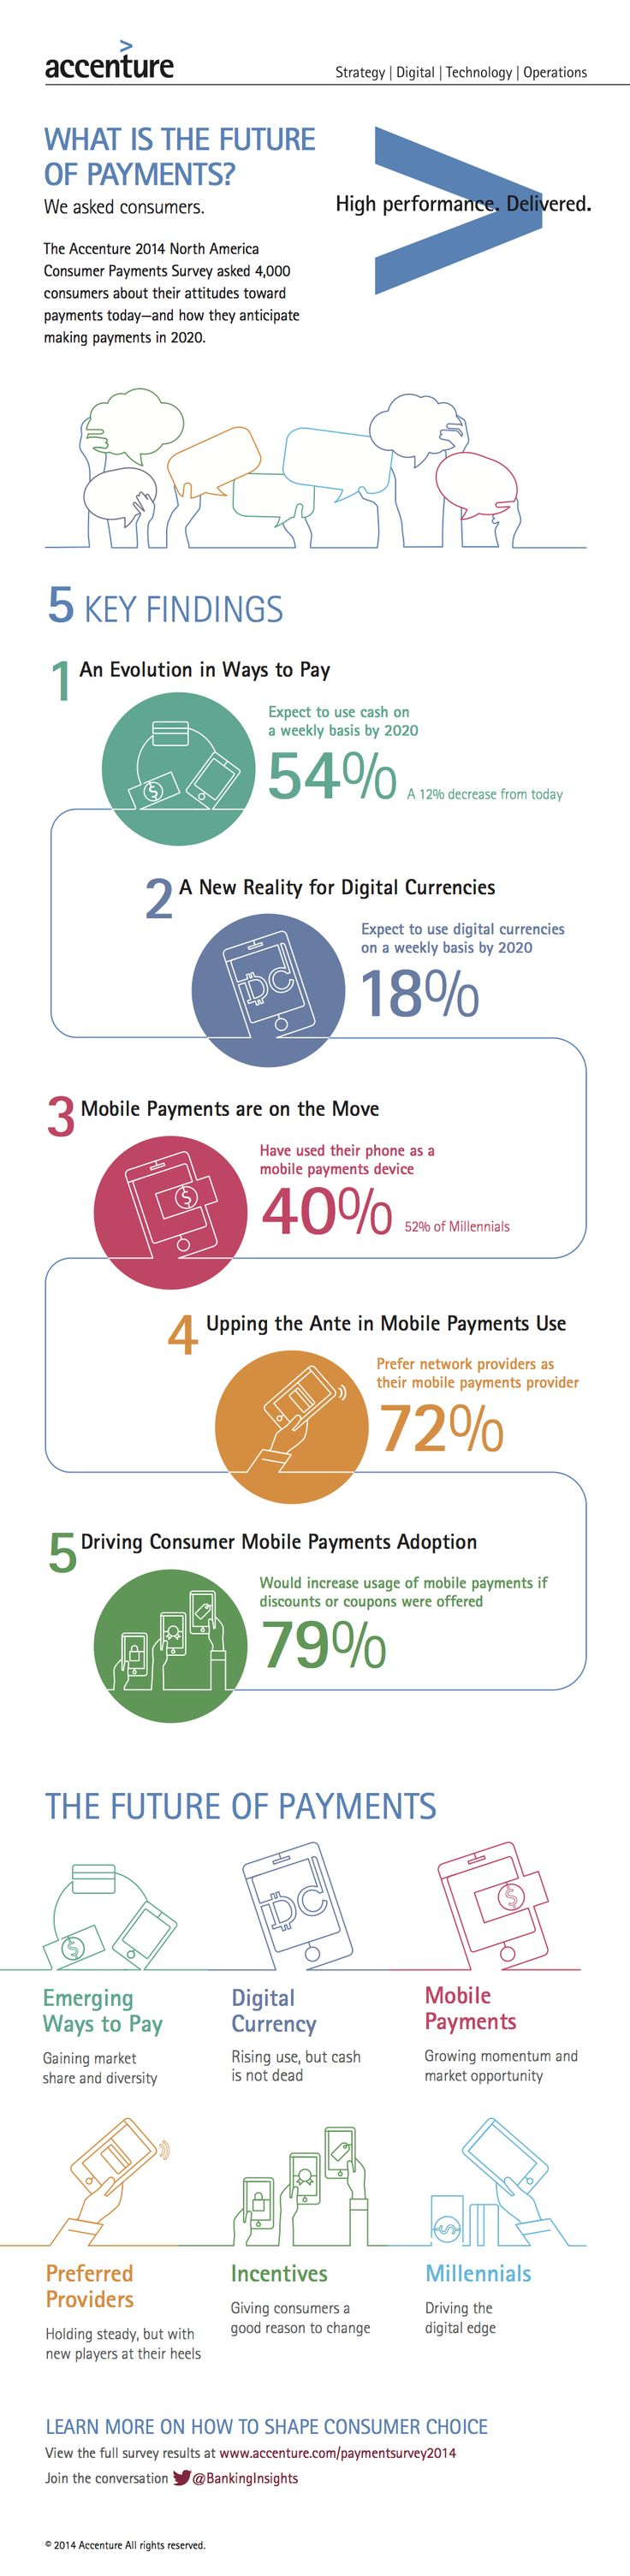 Payment Technology Trends that are Altering the Traditional POS Infrastructure.